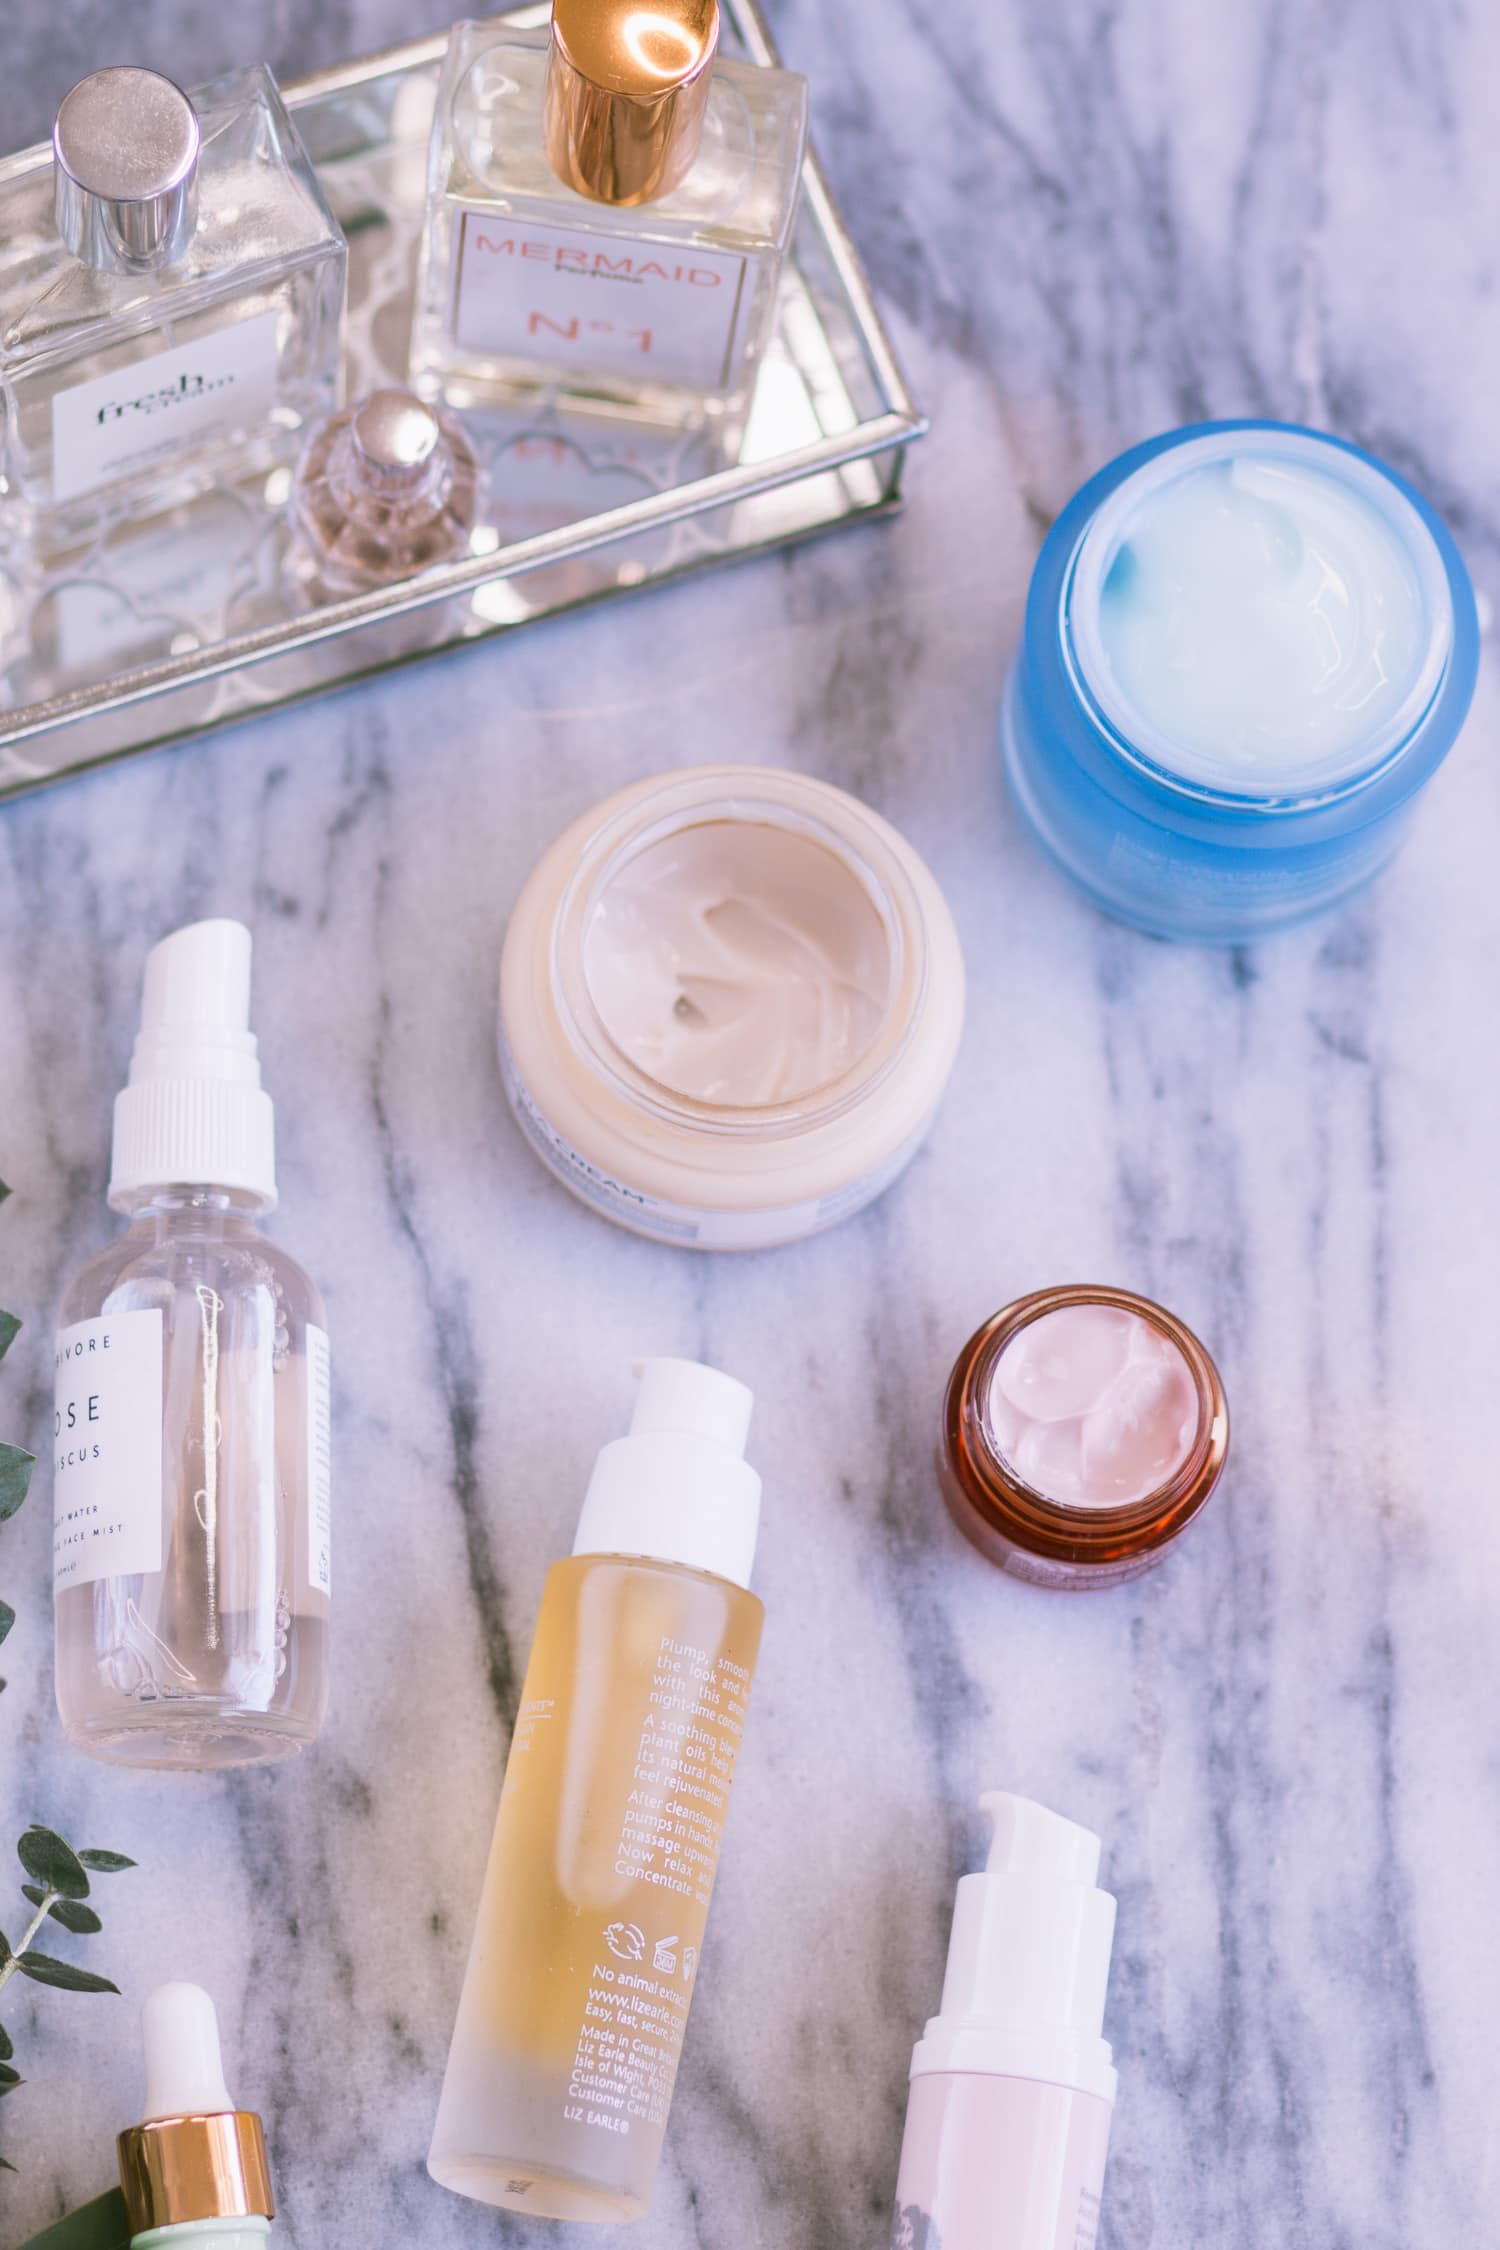 how-to-update-your-fall-skincare-routine-beauty-blogger-ashley-brooke-nicholas-9561-2